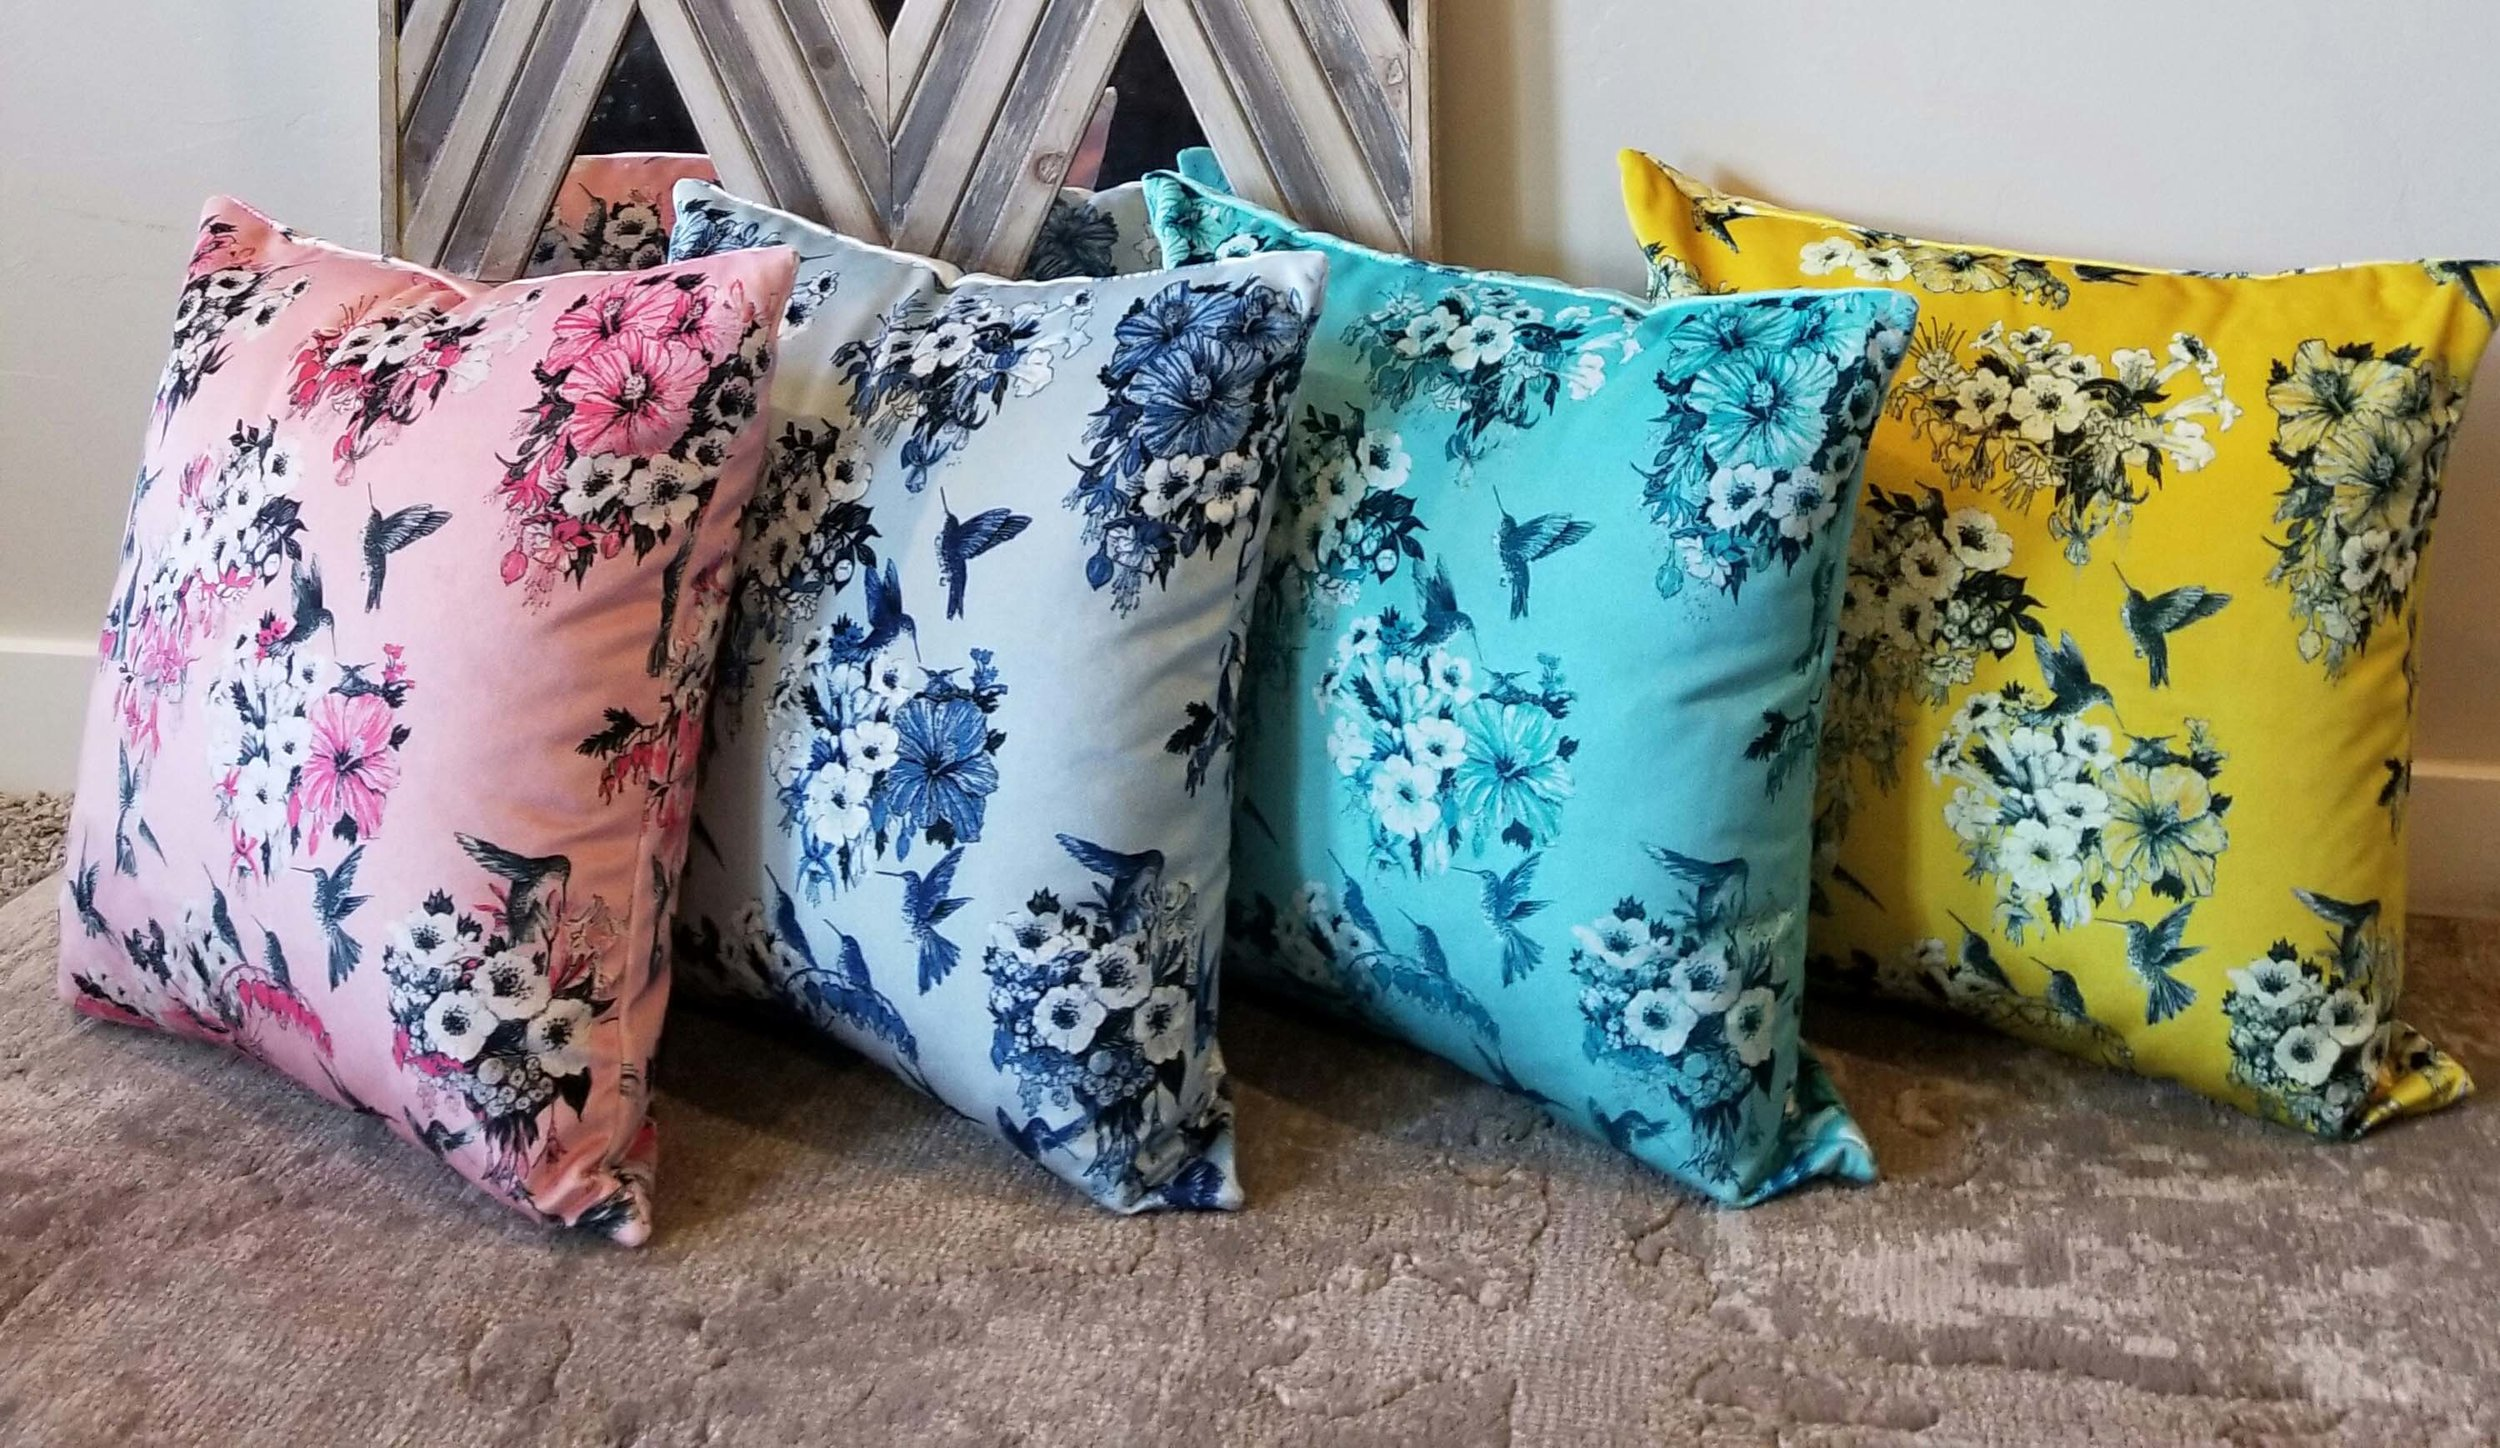 Set of colored floral printed fabric pillows